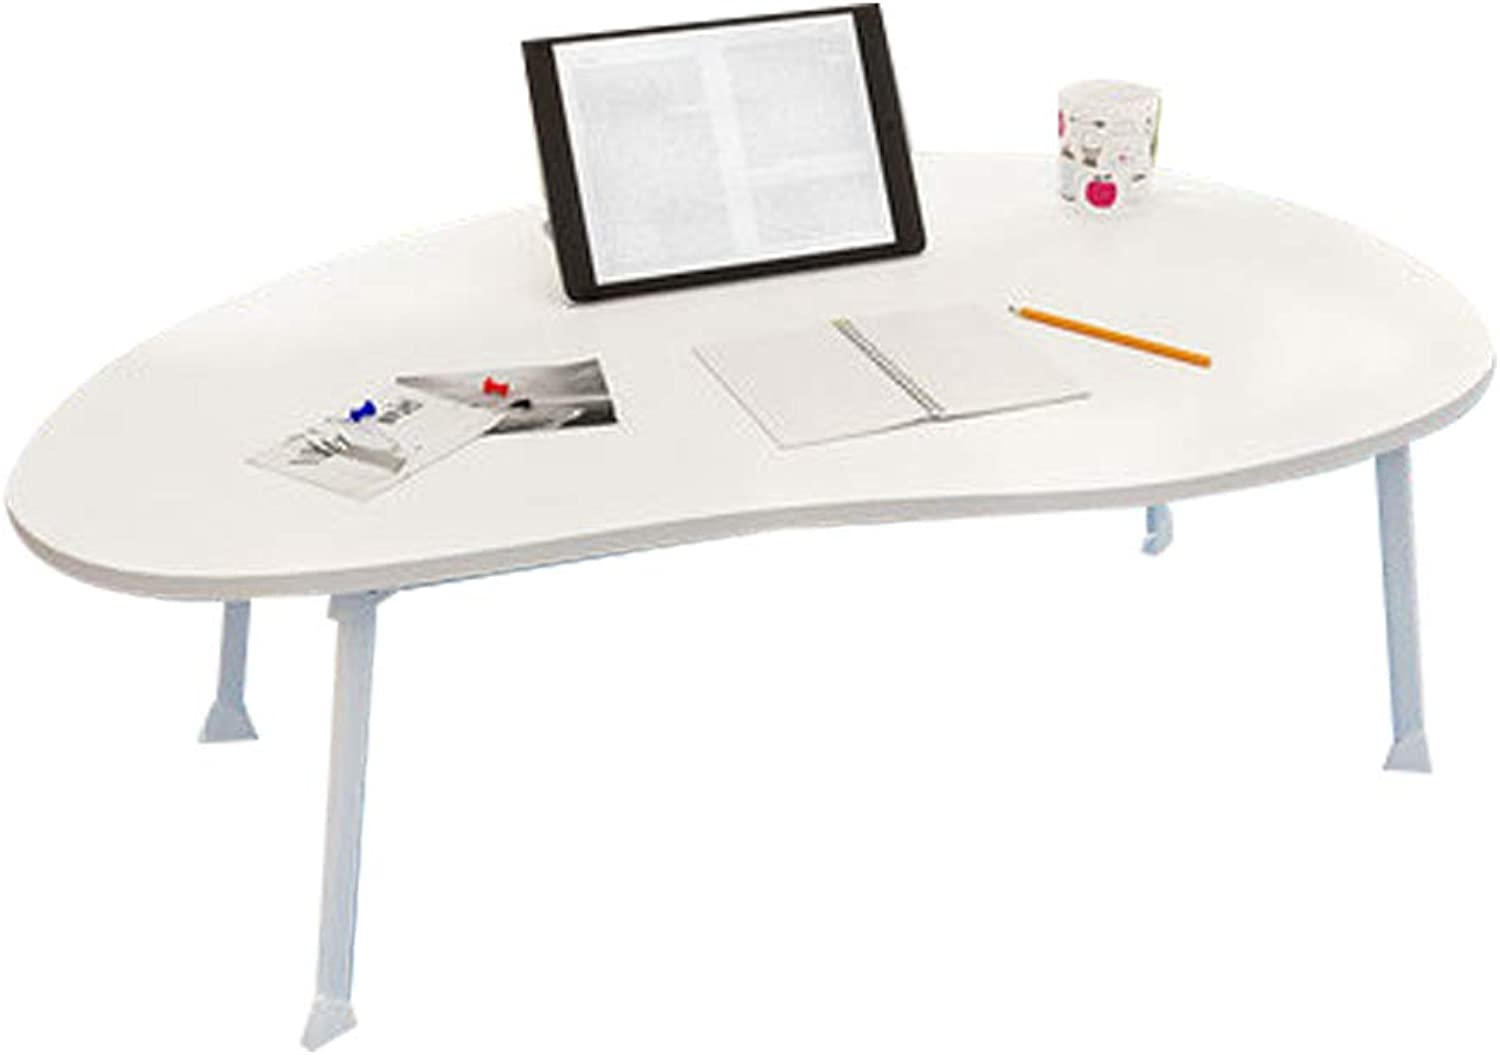 BLWX - Folding Table - Bed Table Folding Lazy Computer Table Home Simple Floating Window Table Dormitory Bed Student Writing Small Desk Folding Table (color   D)